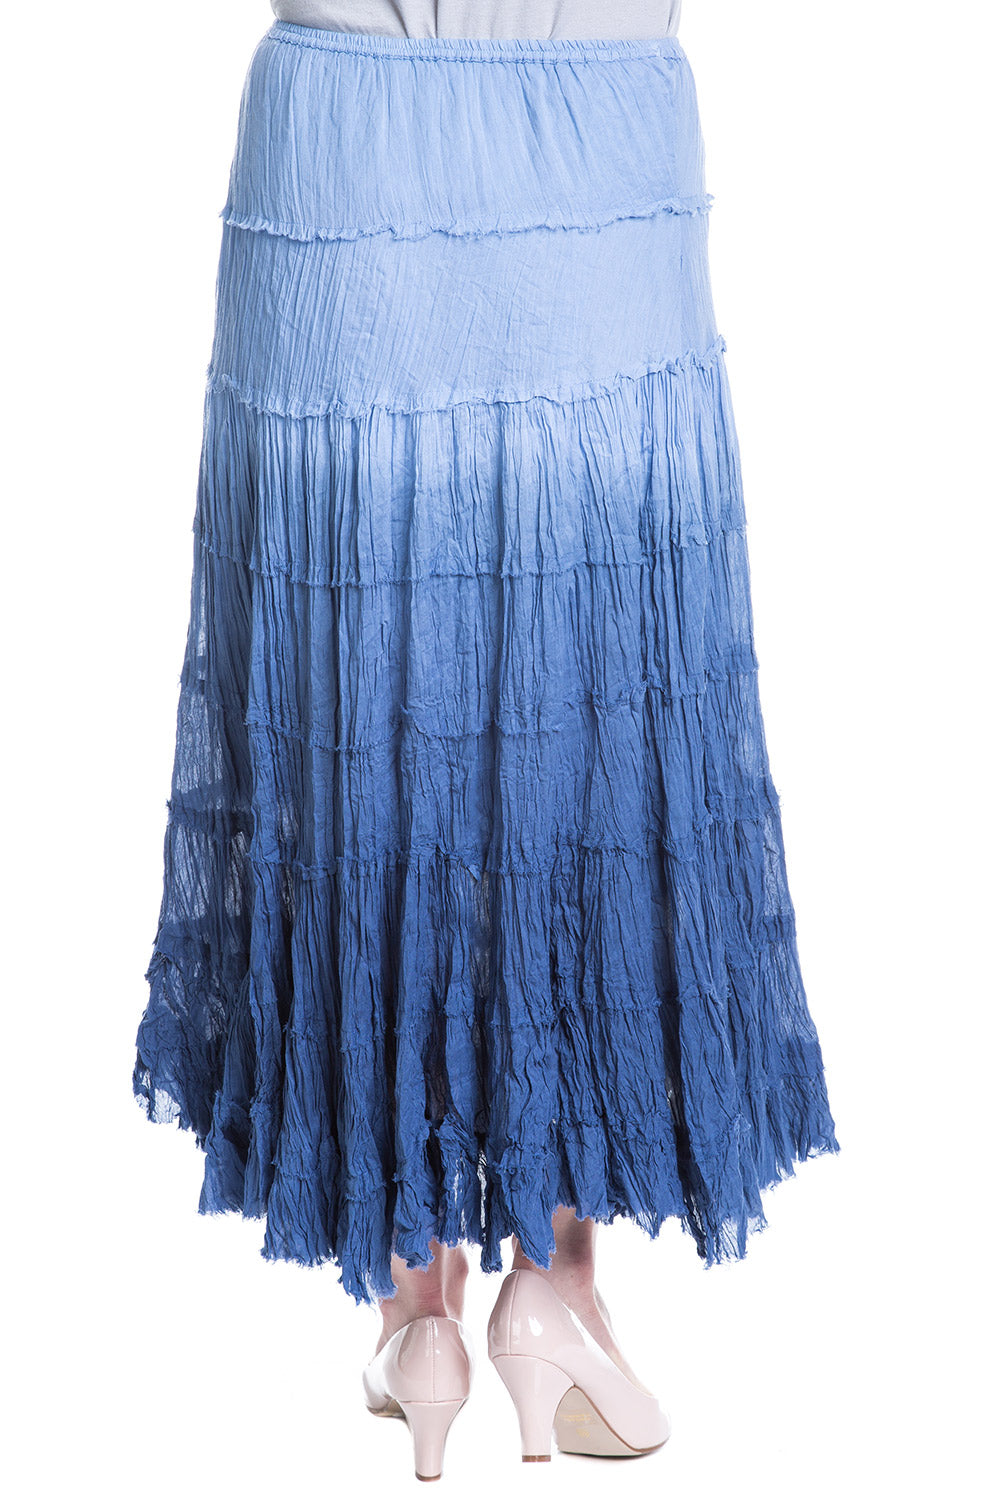 Type 2 Ombre Peasant Skirt